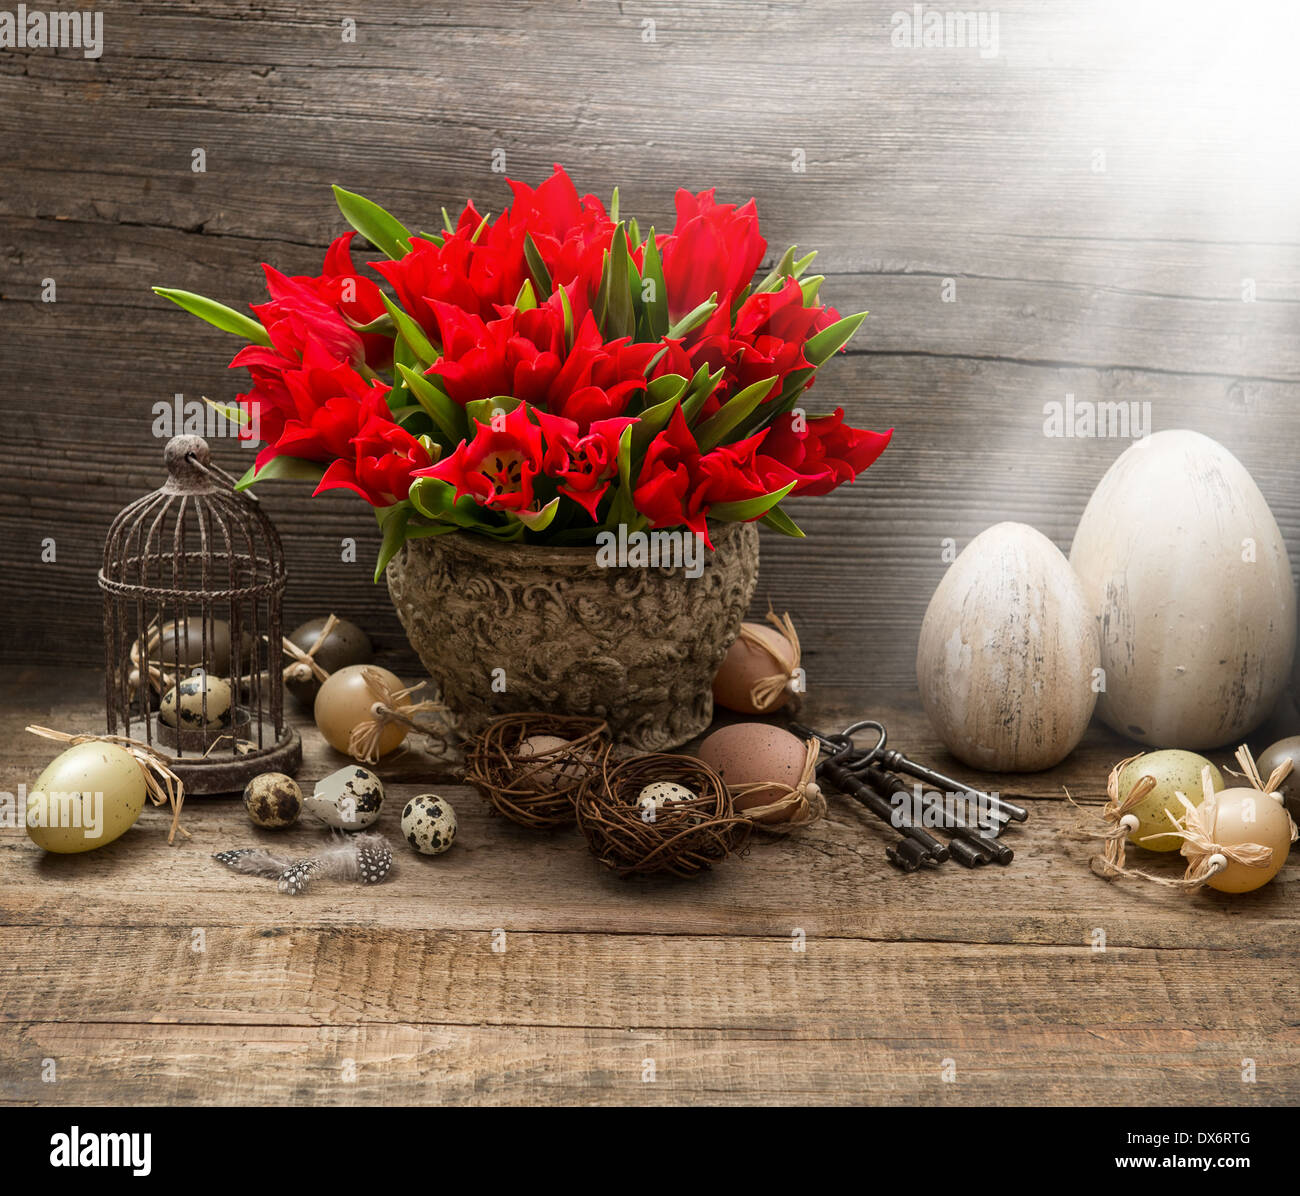 vintage easter composition with eggs and red tulips. nostalgic still life home interior with light beams Stock Photo